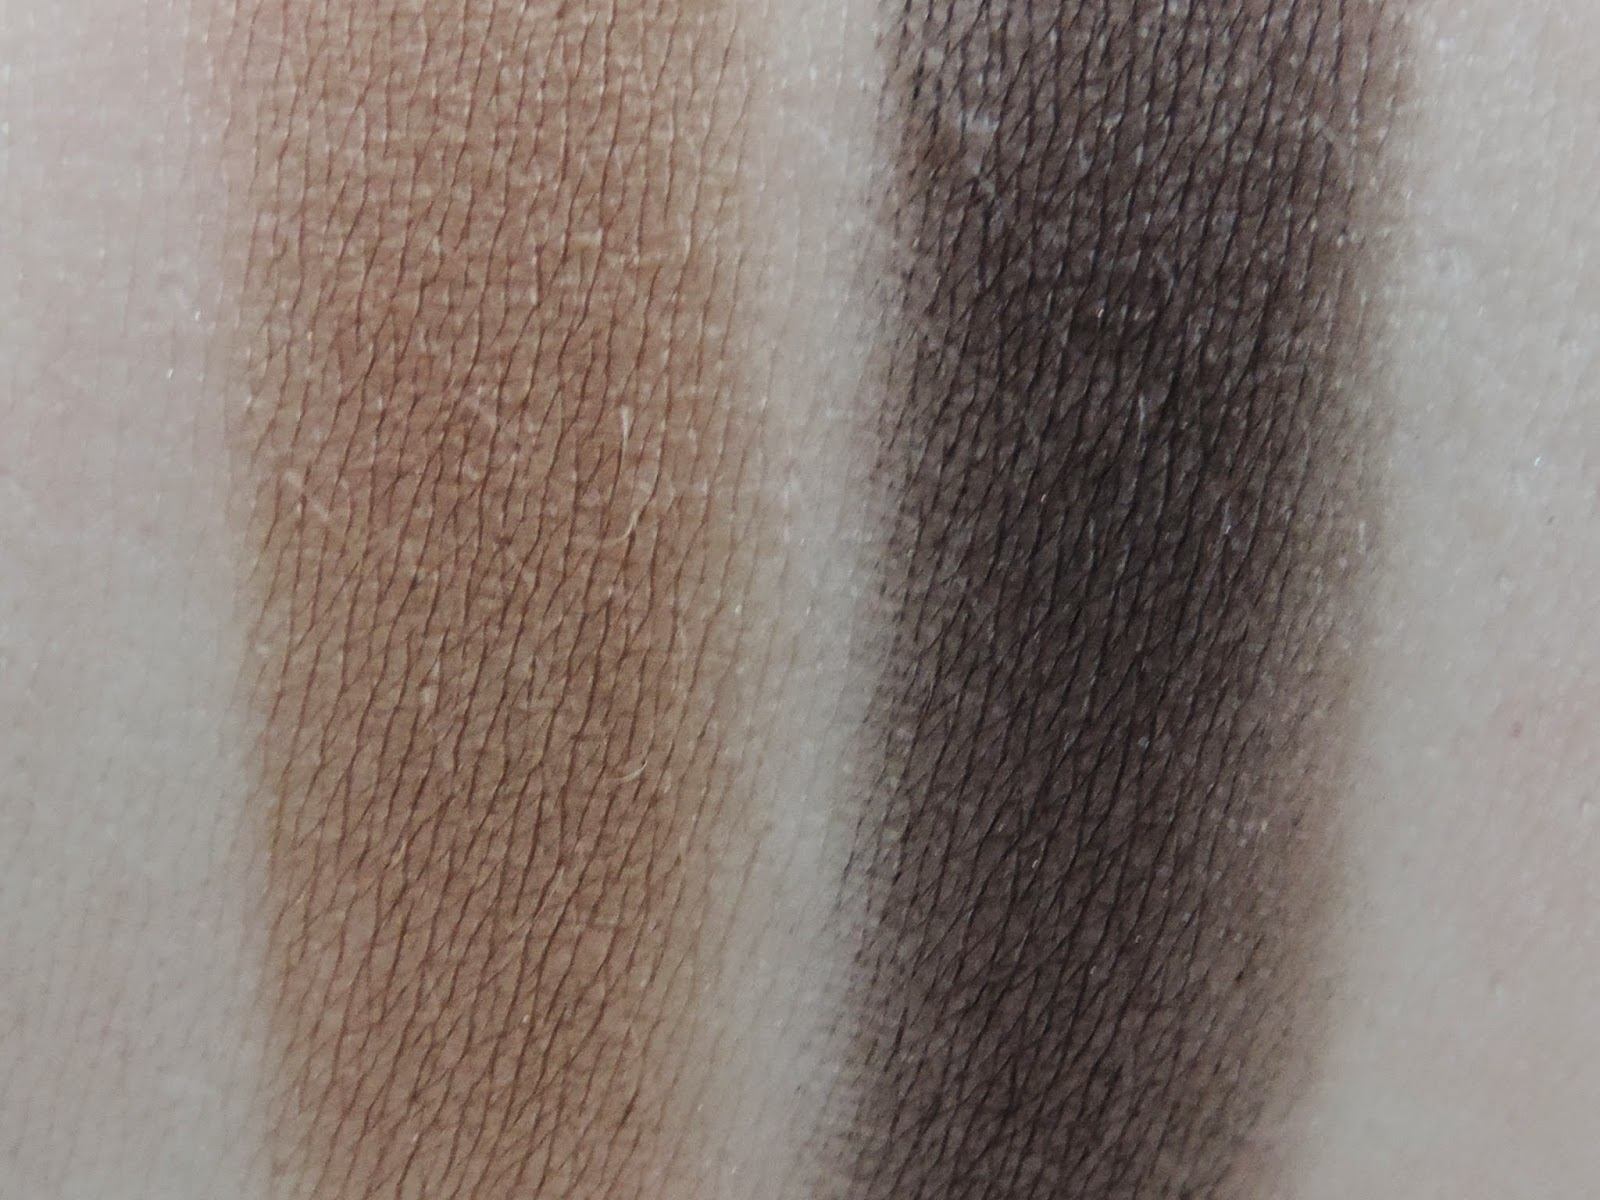 5 Couleurs Eyeshadow Palette - Cuir Cannage by Dior #17